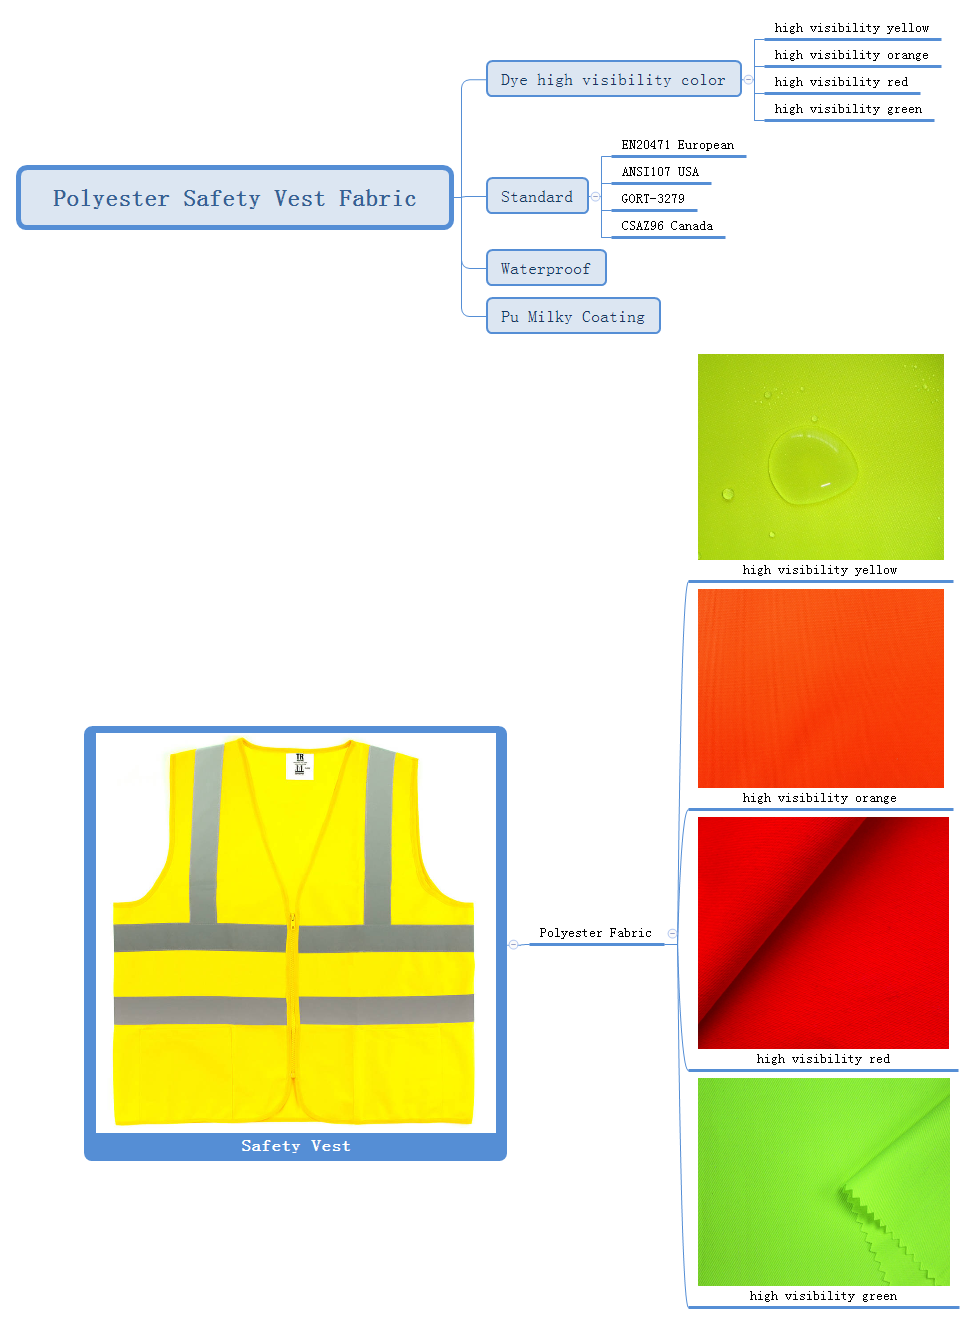 Polyester High Visibility Fabric for Safety Vest